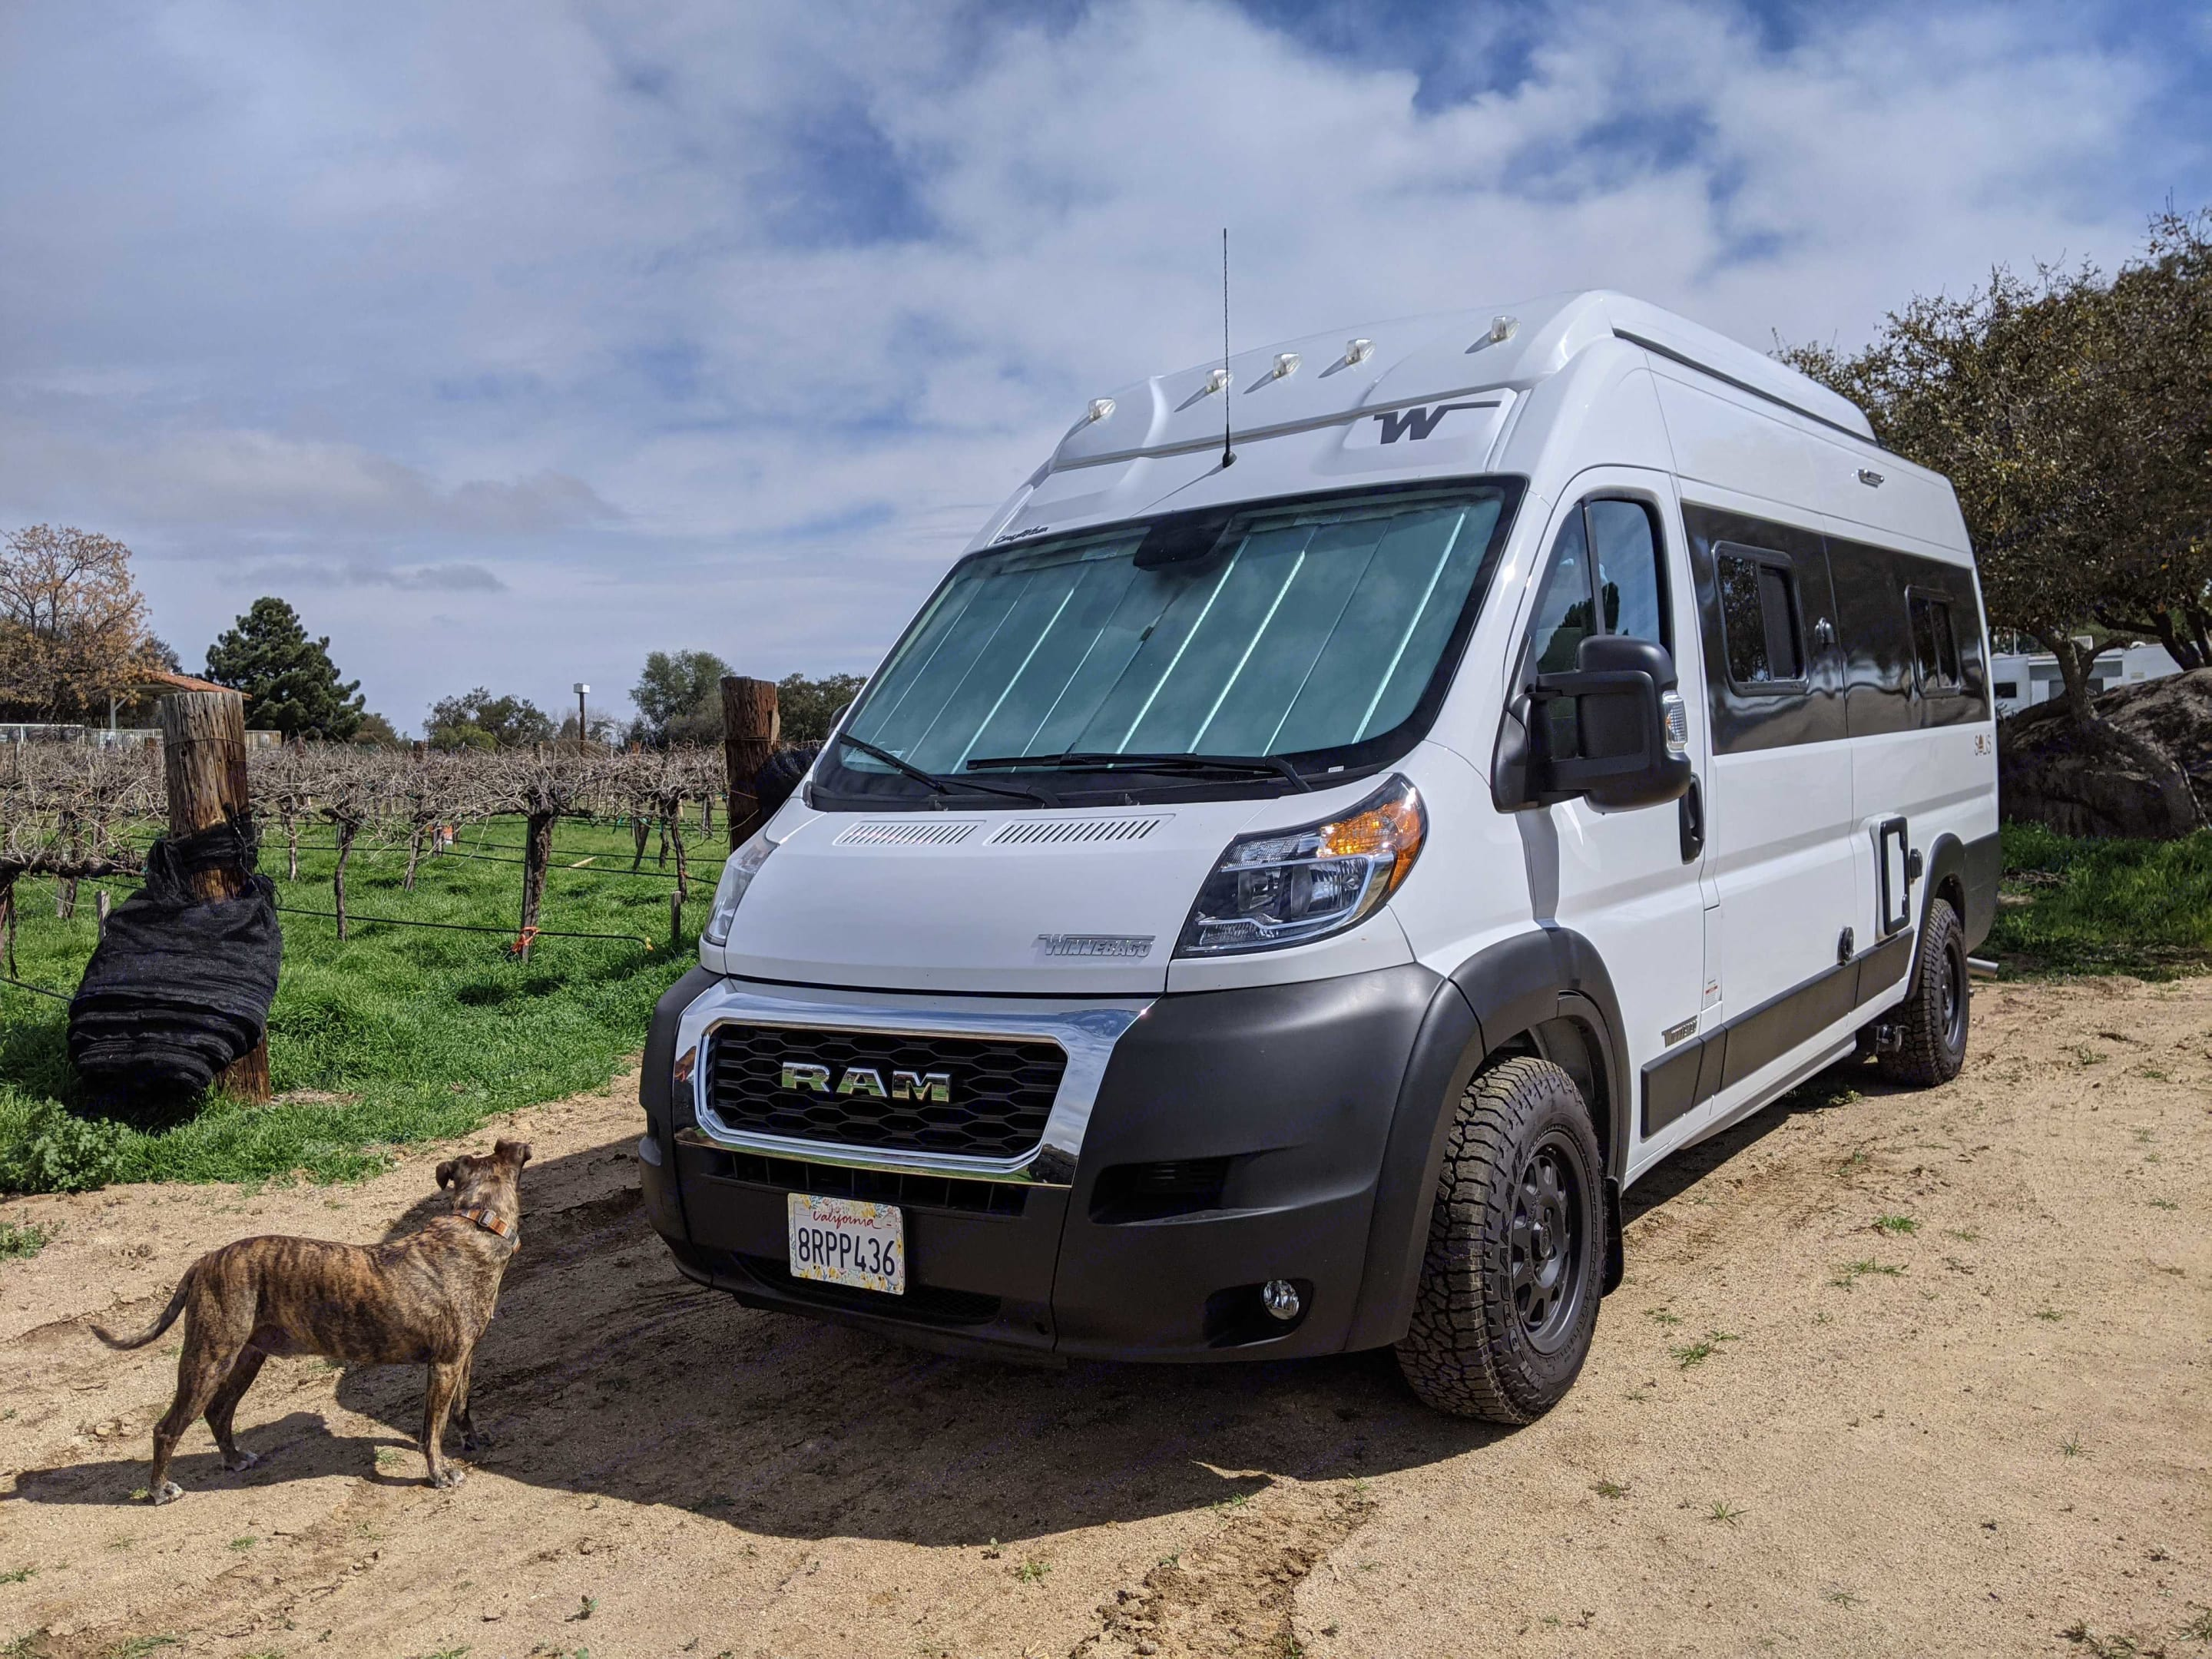 Camping for the night at a winery in Ramona. Sun shades keep the light out, and the van cool . Winnebago Solis 59PX 2021